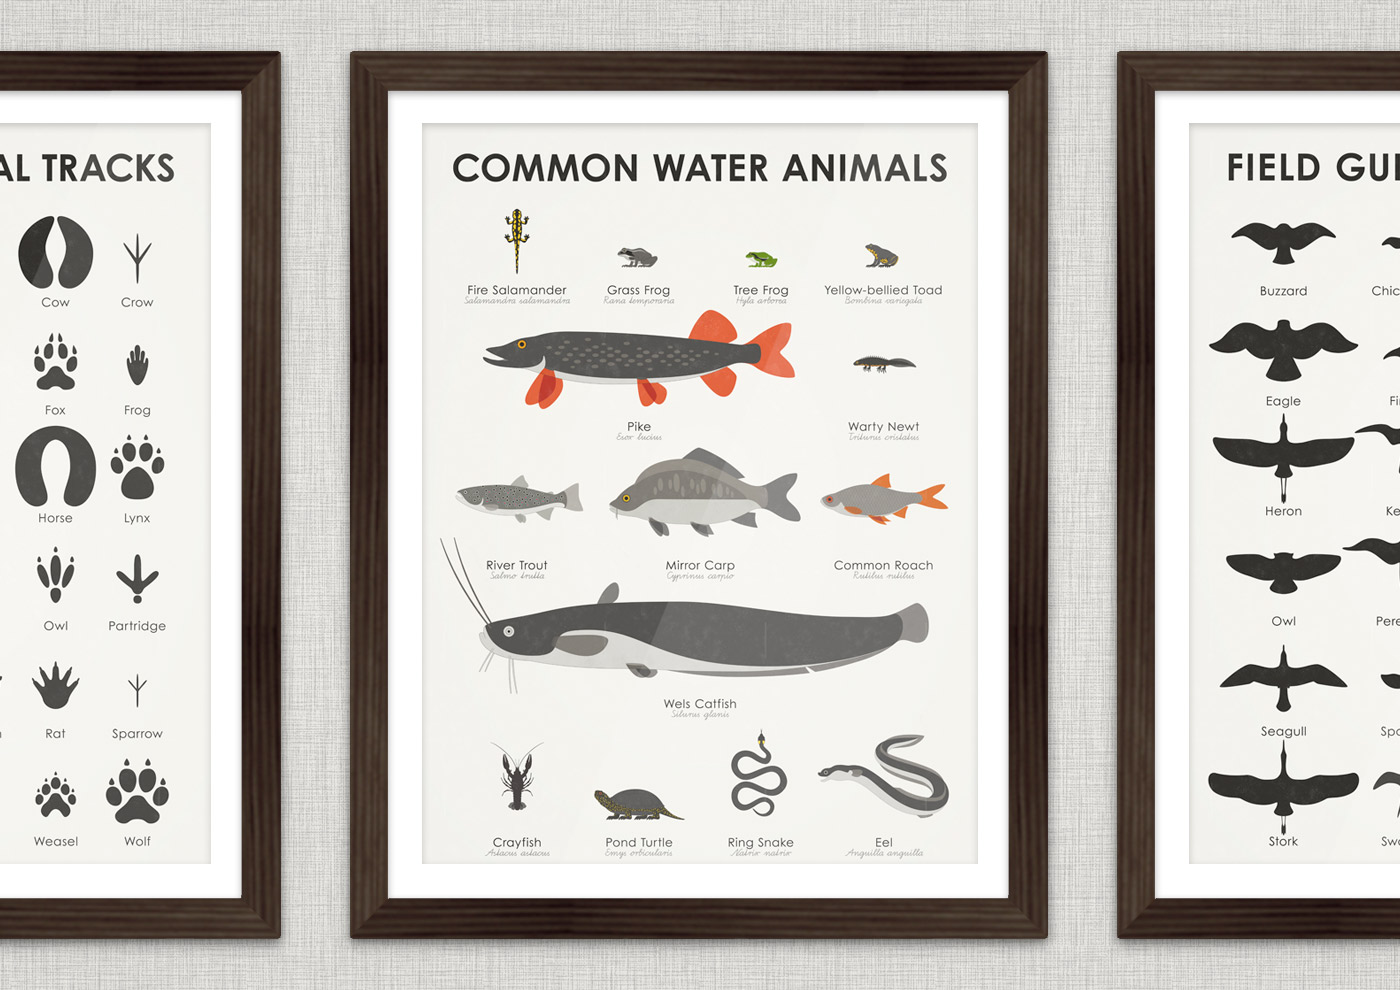 A practical infographic sheet that helps you to identify, learn and remember the typical looks, marking and habit of animals that live in and by the water (fishes, reptilia and amphibia), such as fire salamander, grass frog, tree frog, yellow-bellied toad, pike, warty newt, river trout, mirror carp, common roach, wels catfish, crayfish, terrapin, ring snake and eel.